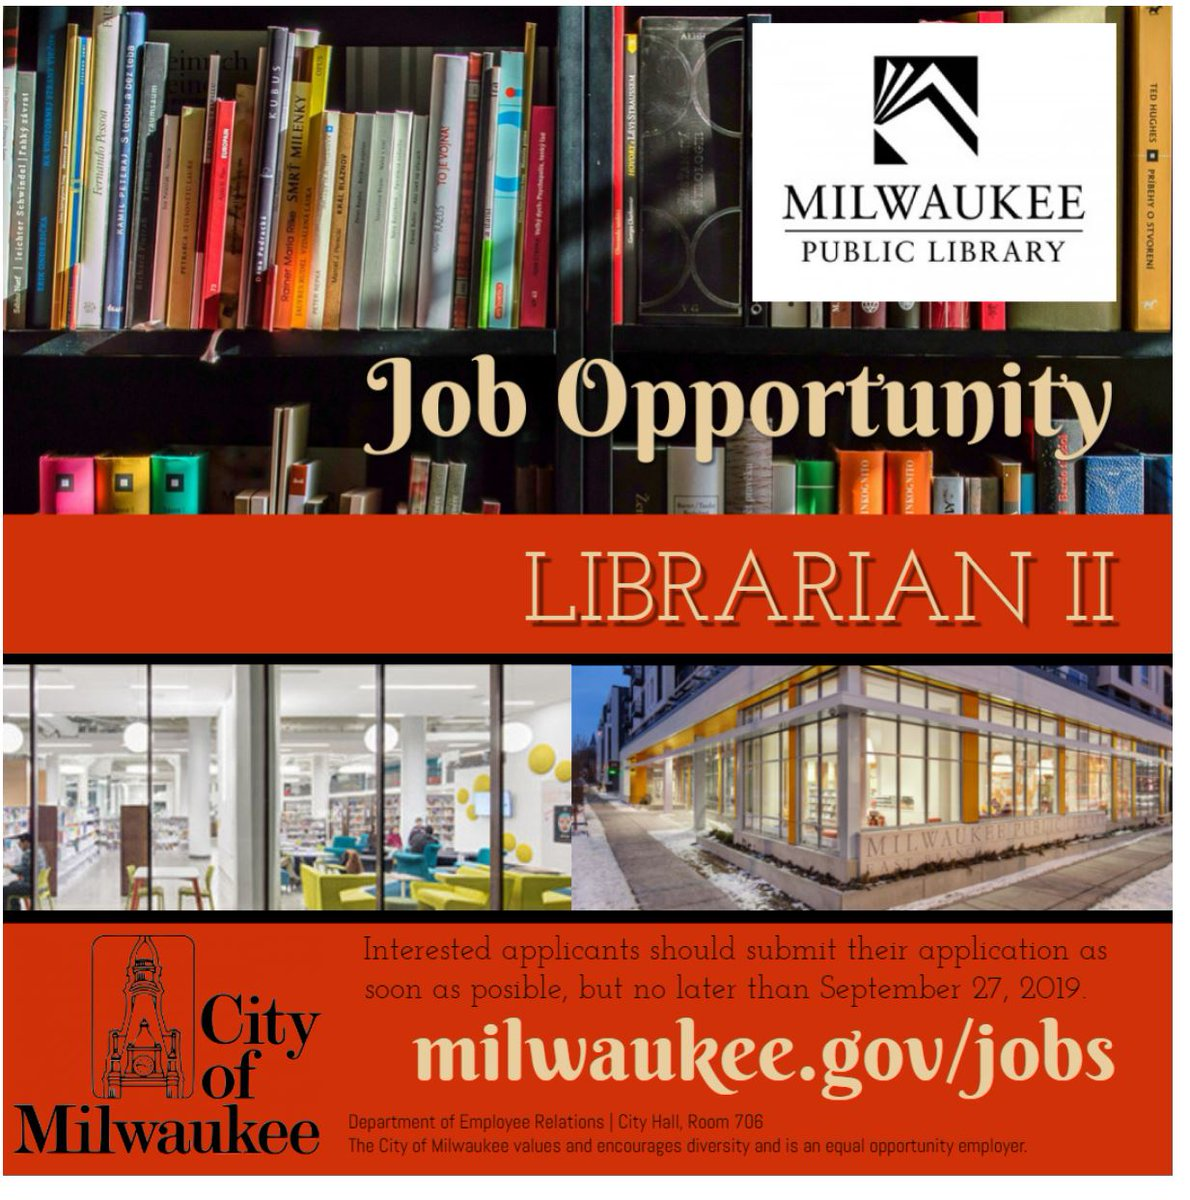 The #MilwaukeePublicLibrary is #hiring! Help people to read, learn and connect as a Librarian II @MilwaukeePubLib! Learn more: http://ow.ly/Cu0b50w4zdu   #milwaukee  #mke #librarian #library #wisconsin #publiclibrary #jobs #jobsearch #careers #milwaukeejobspic.twitter.com/bnpFm2Ozbq